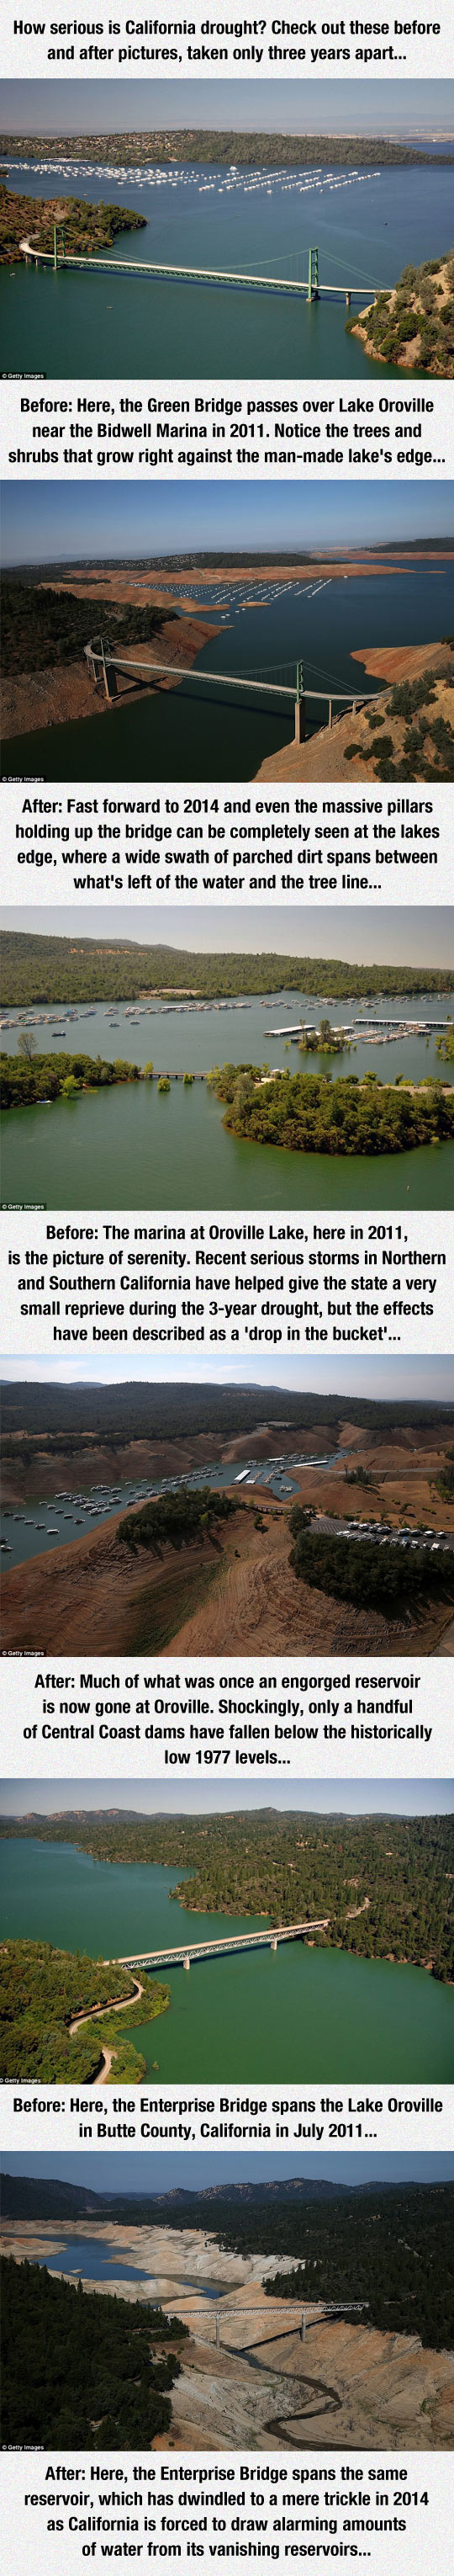 The Seriousness Of California's Drought